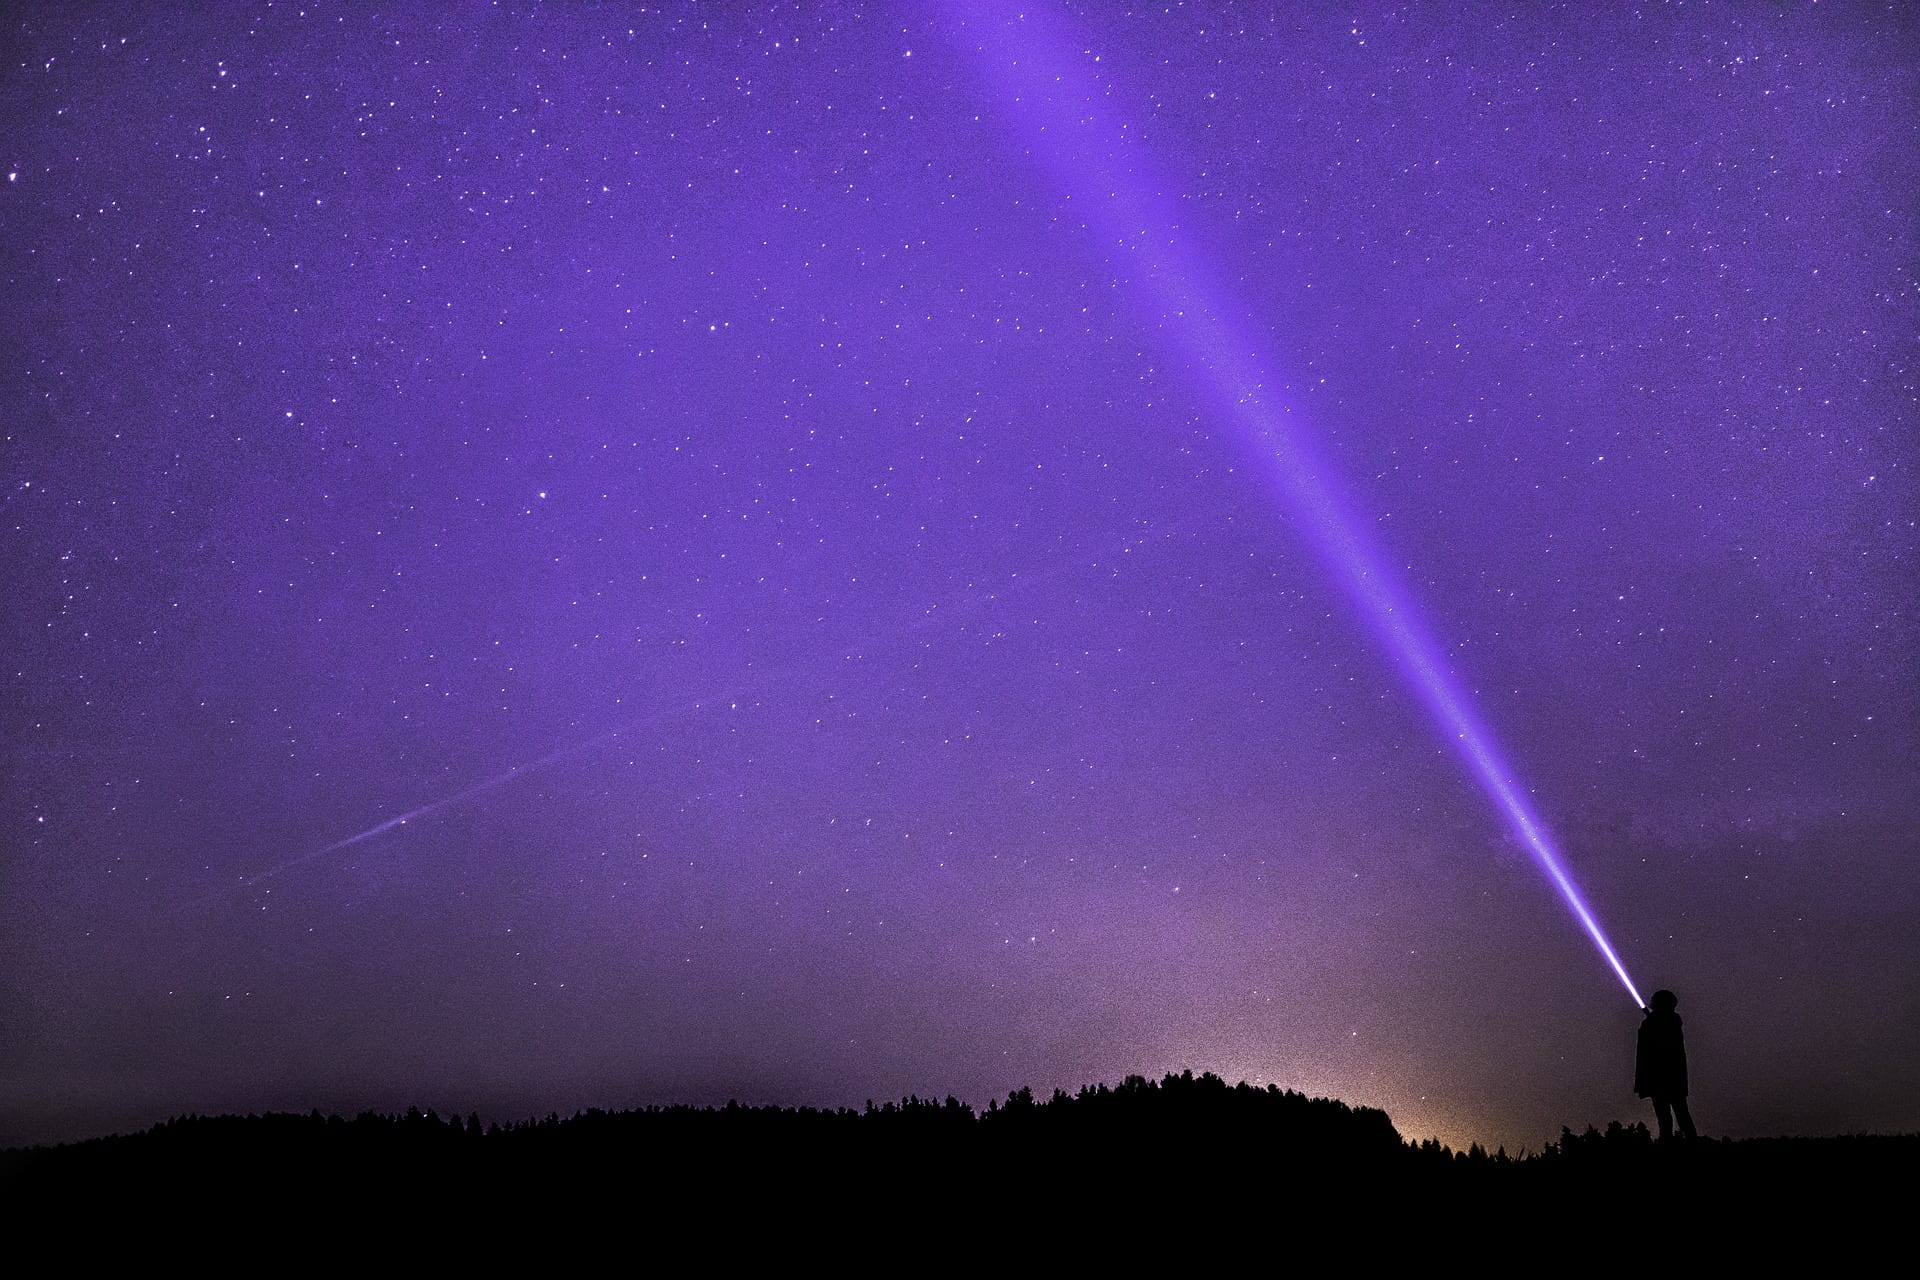 A person shines a flashlight into the night sky, which is filled with stars